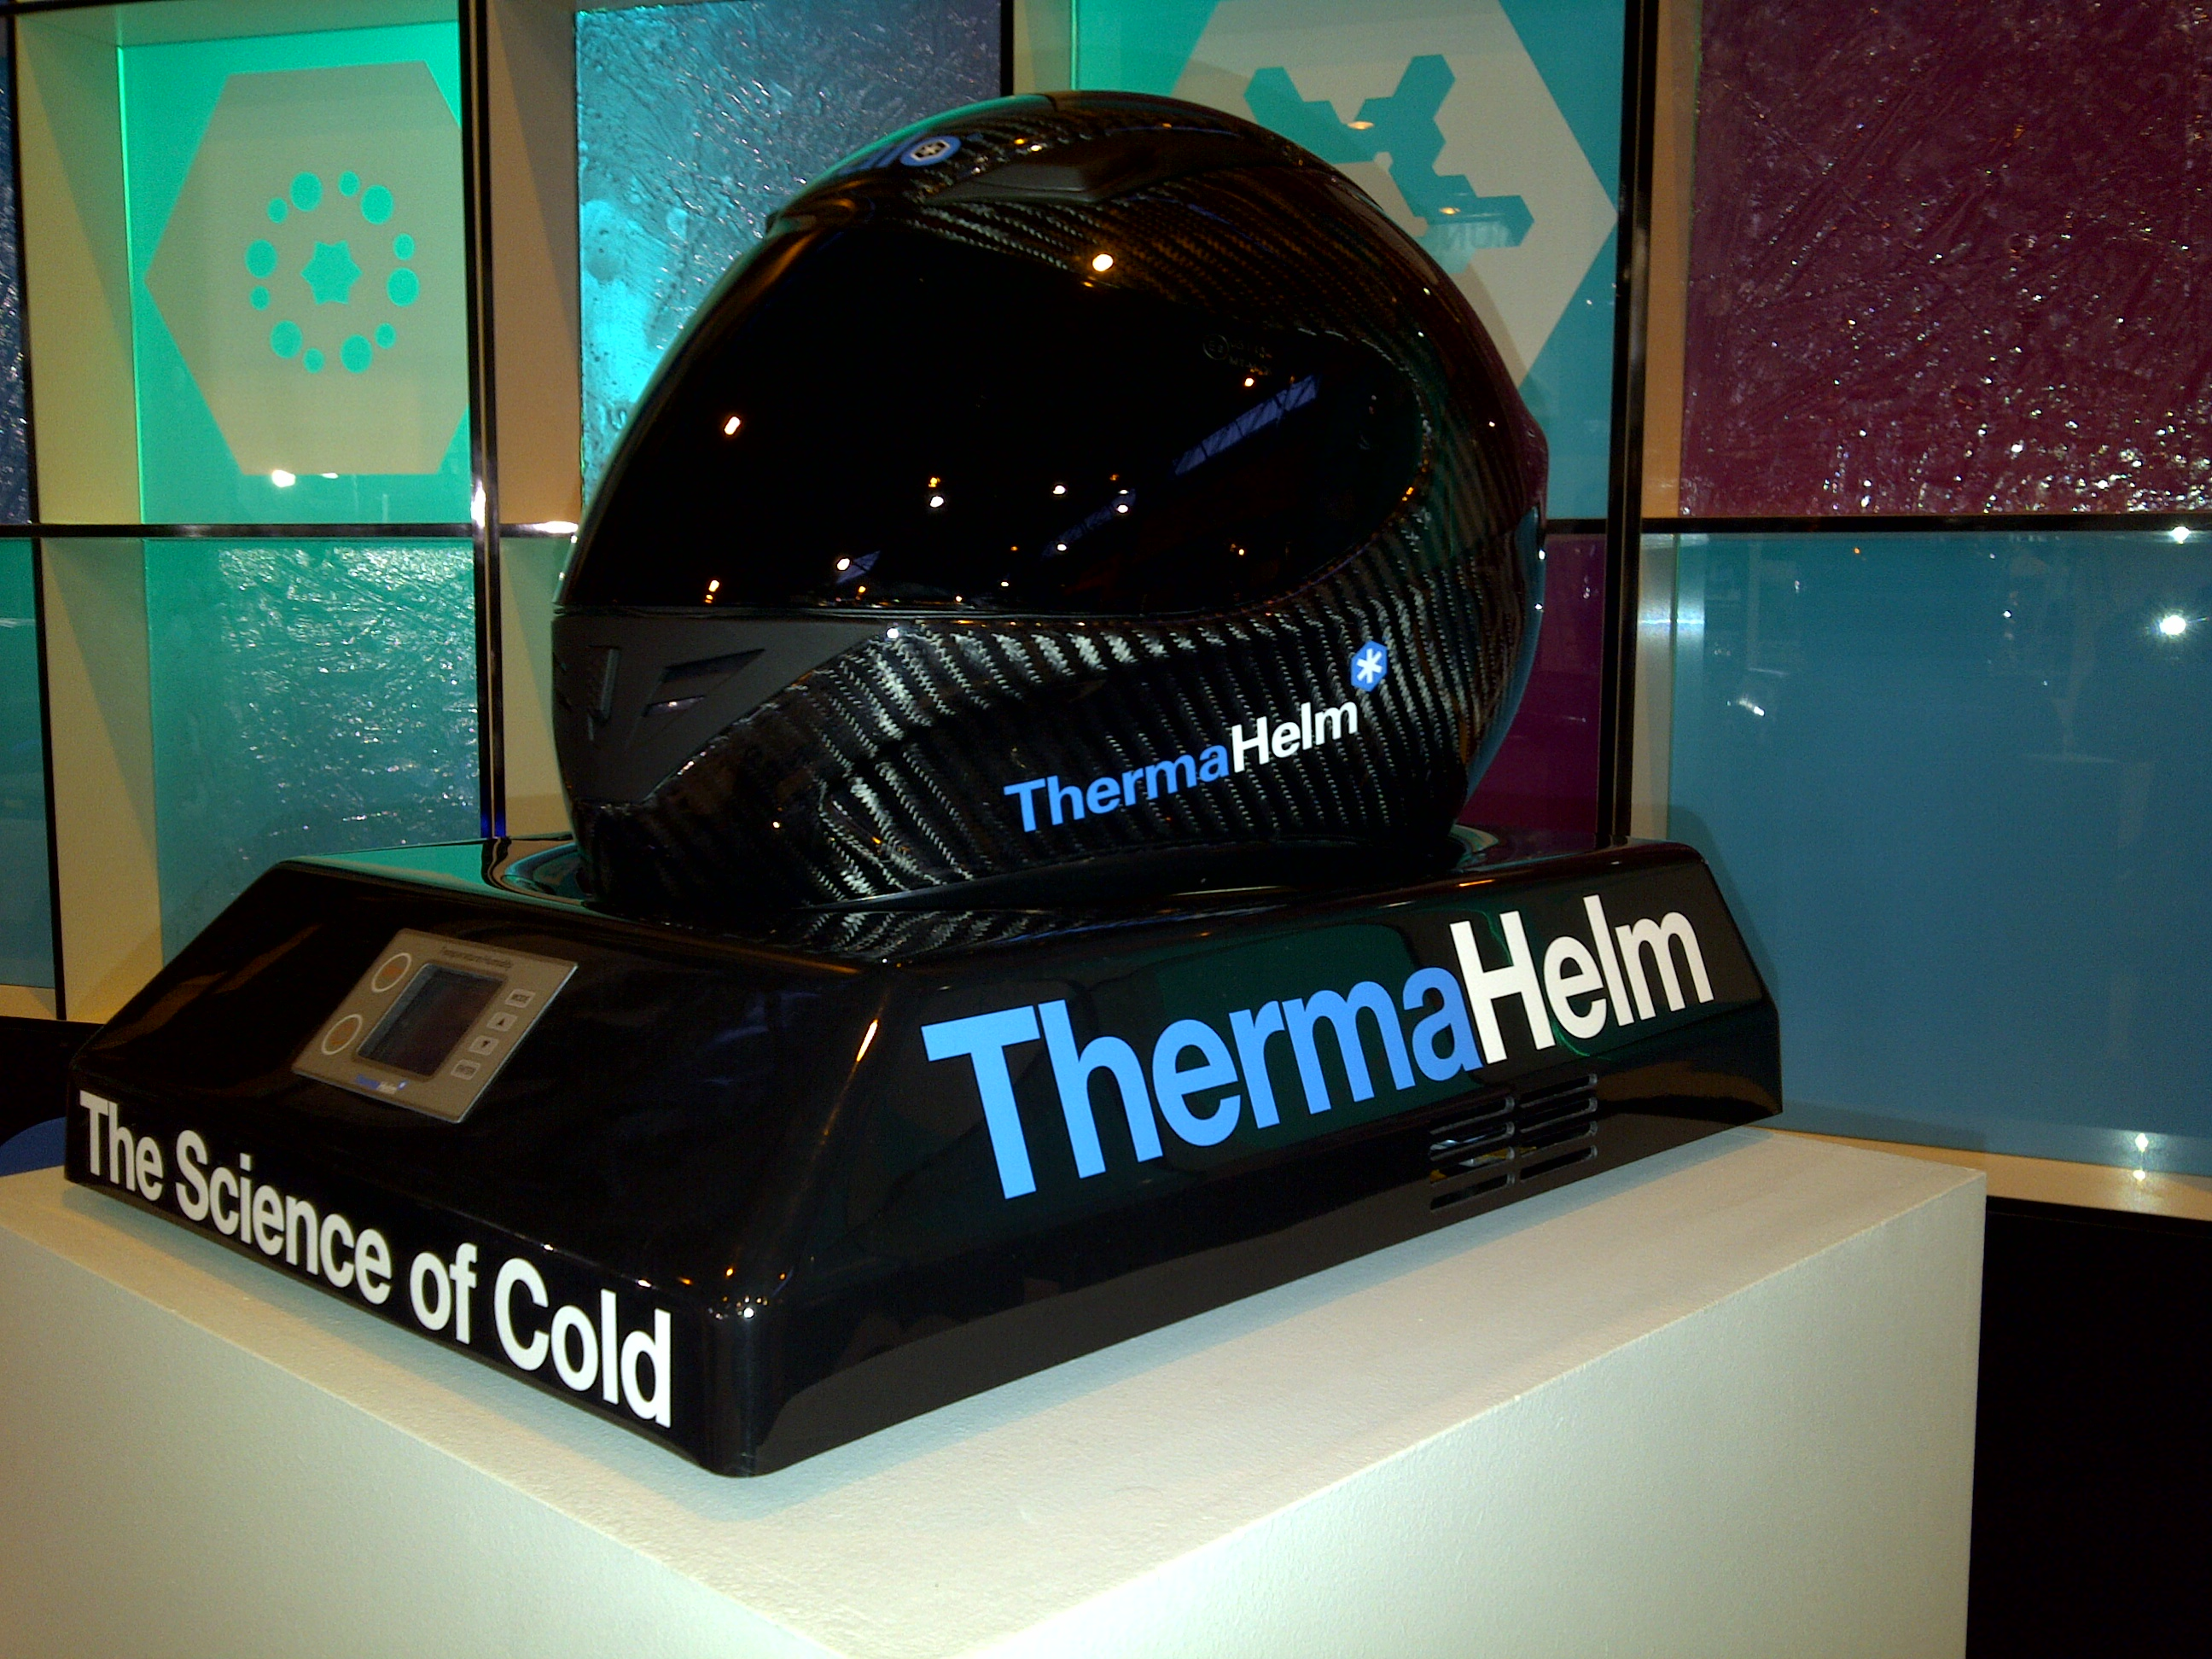 Thermahelm investment news investment tools reviews